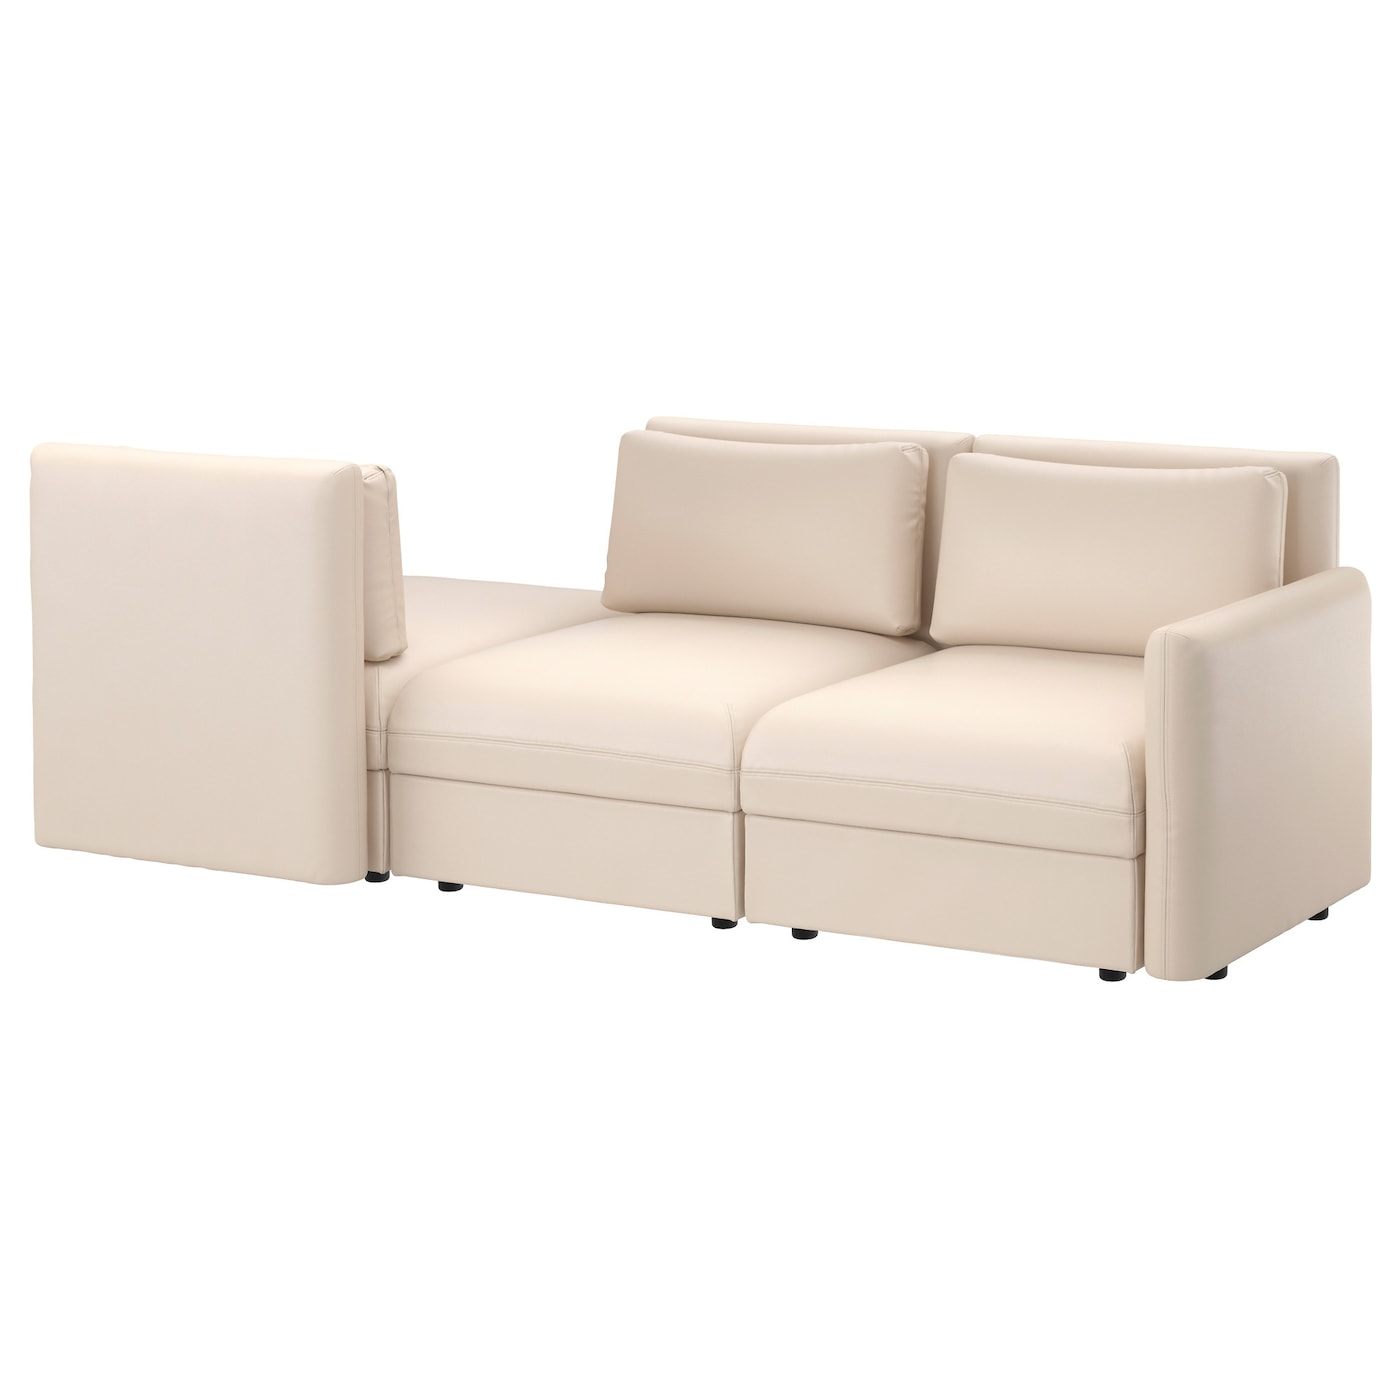 bed sofa sleeper com new fresh kivik salon grau ikea inspirational chair cienporcientocardenal of